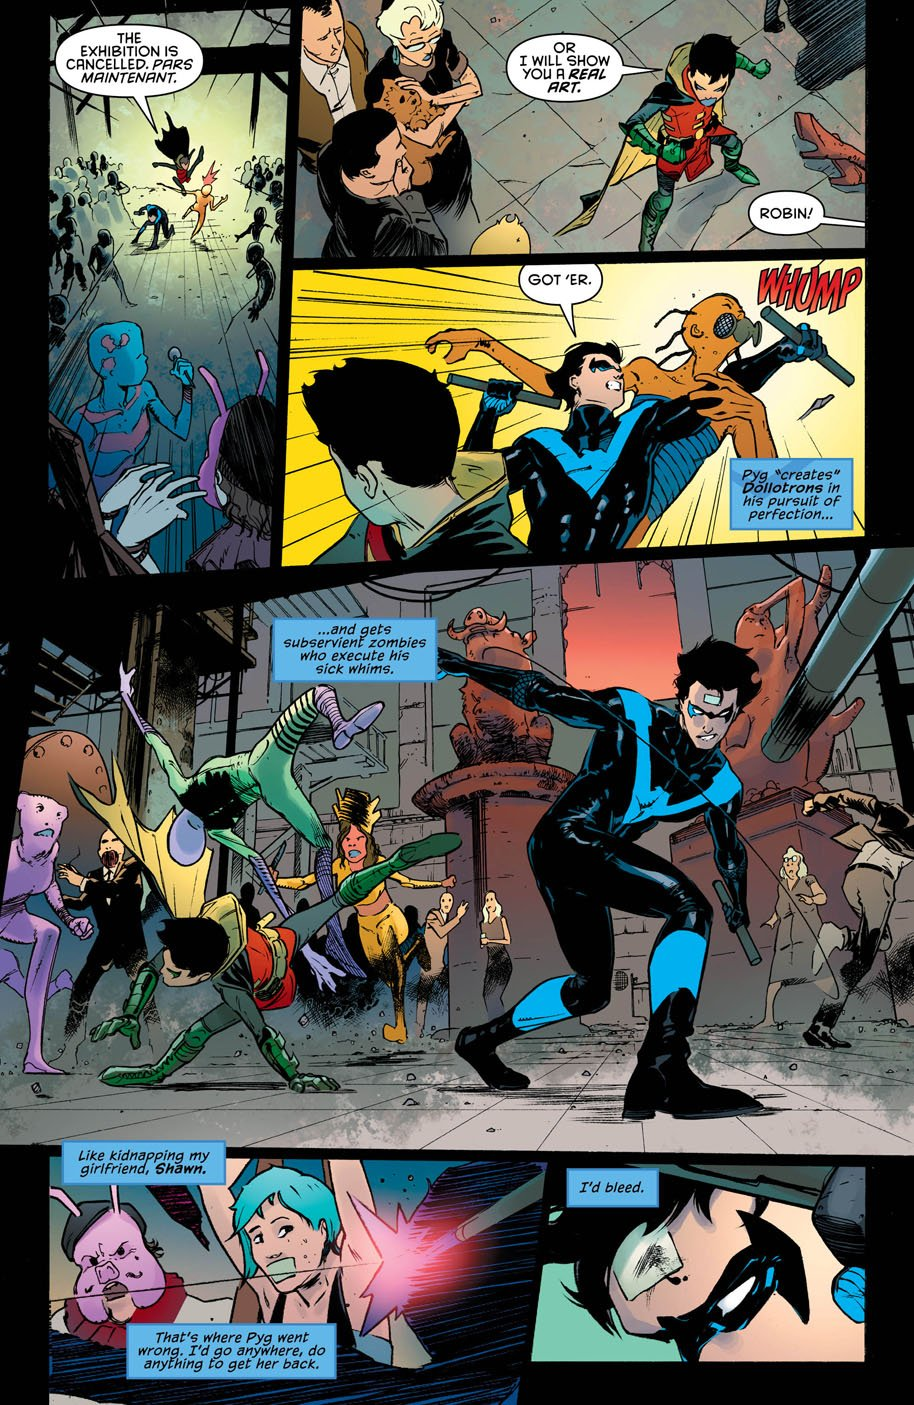 Nightwing 18 page 4